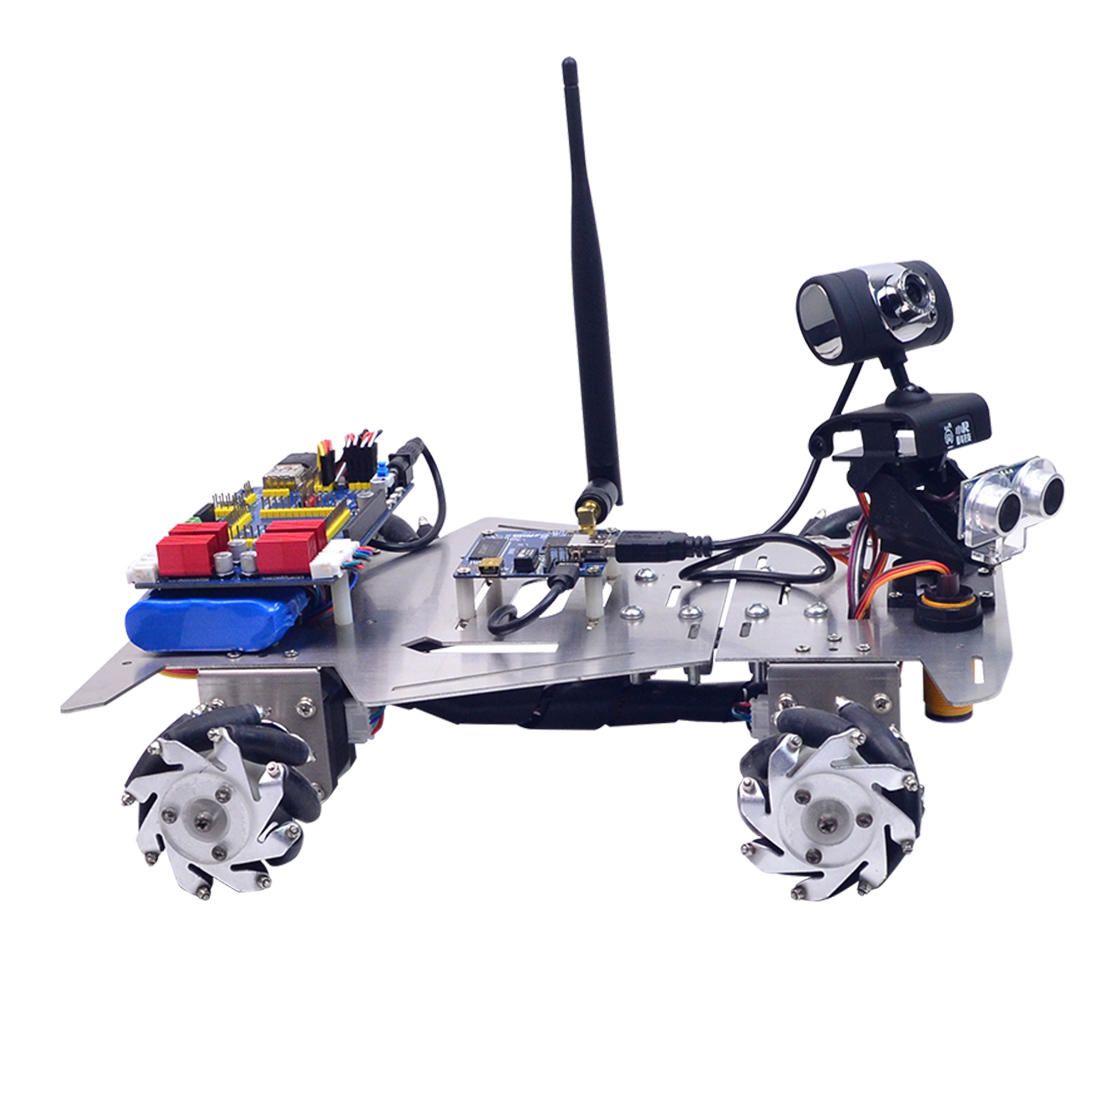 XR Master Omni-Directional Mecanum Wheel Robot Educational Toy Gift For Kid Children Adult-WIFI + Bluetooth Version/WIFI Version